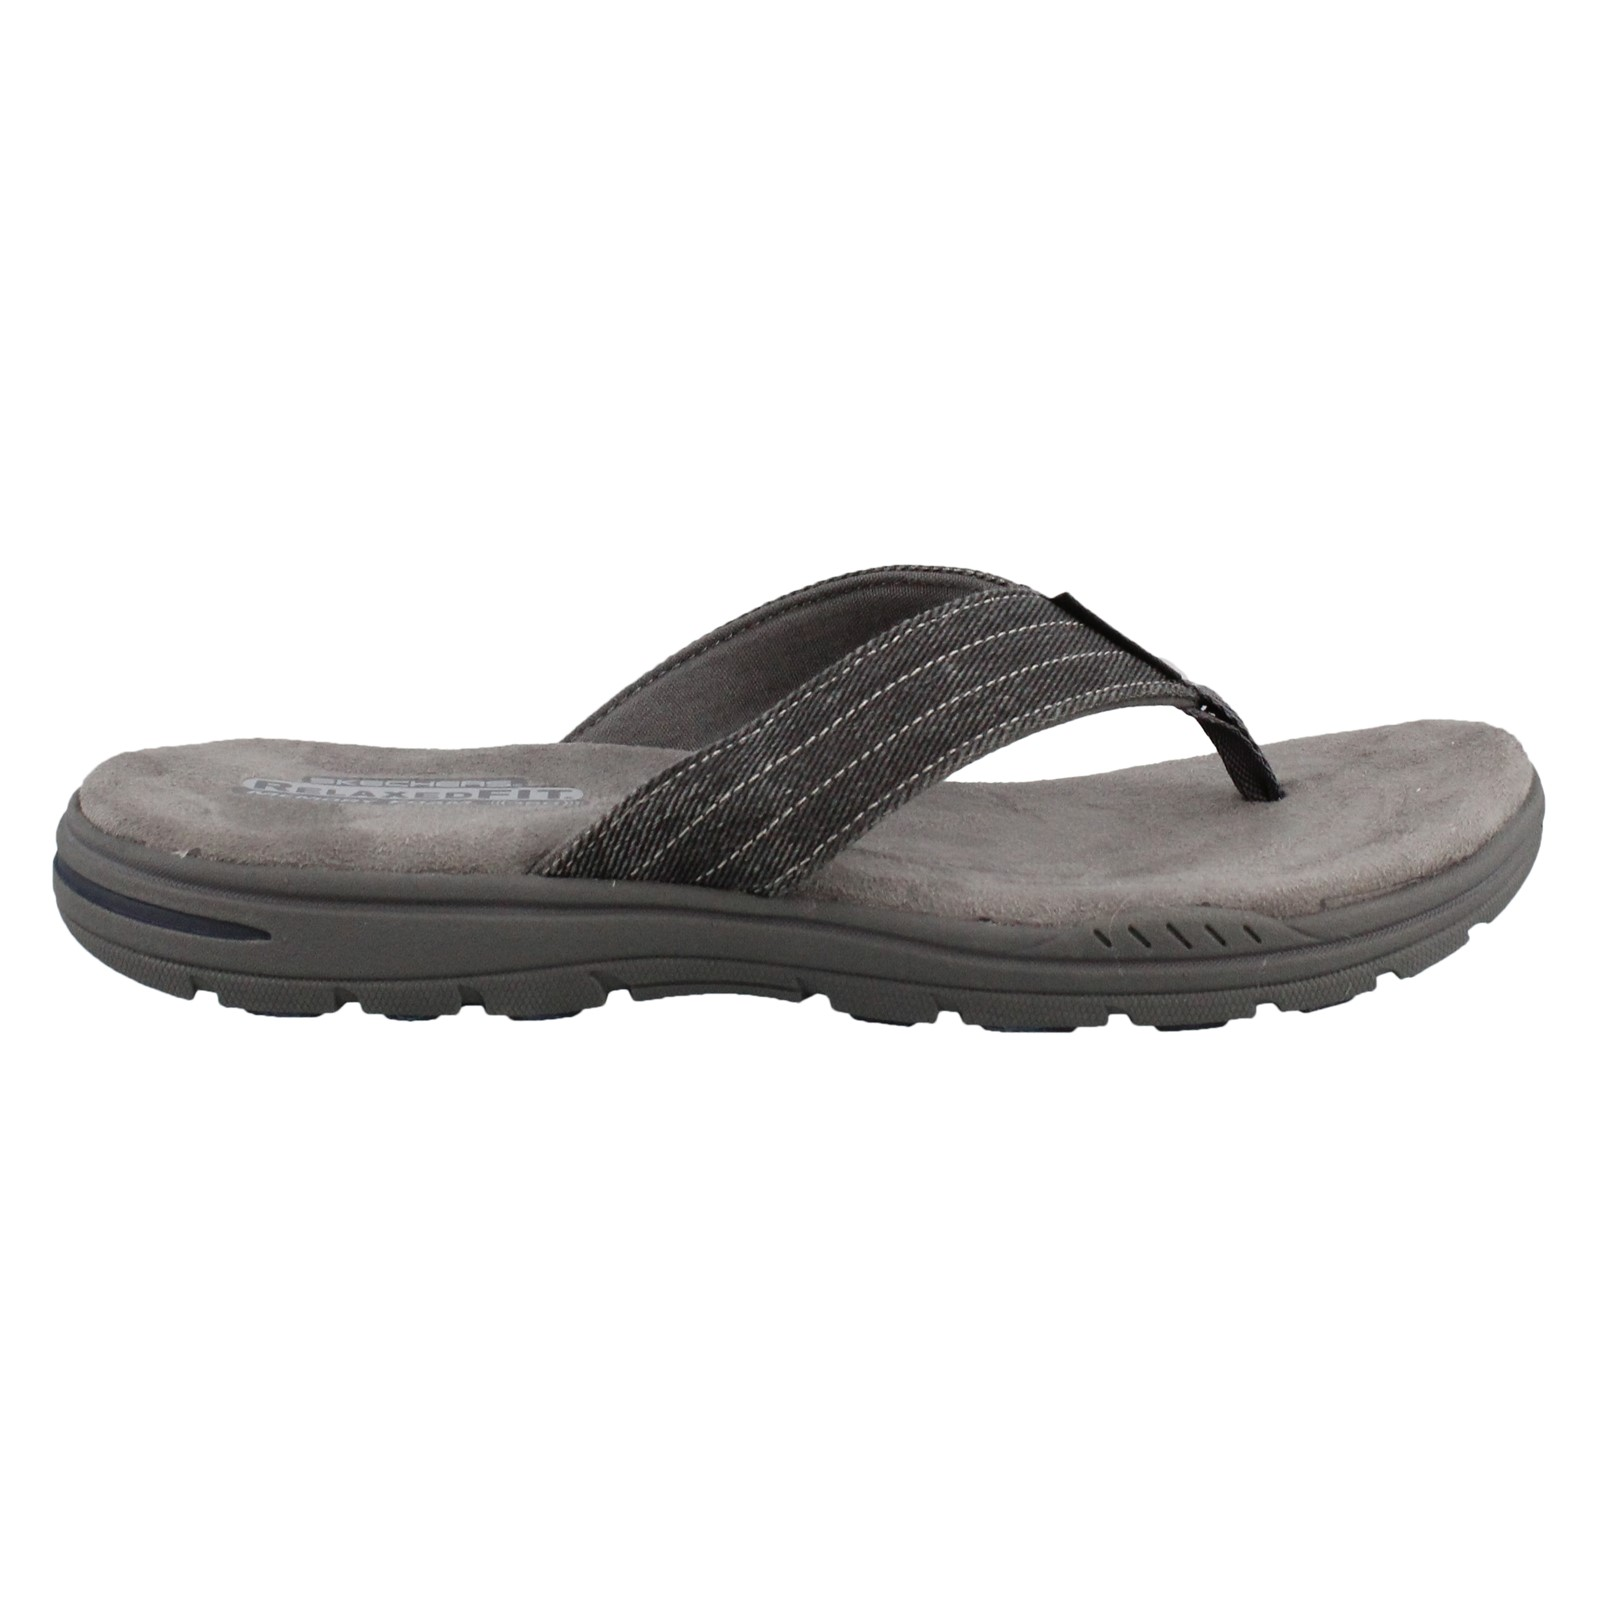 Men's Skechers, Evented Rosen Thong Sandals